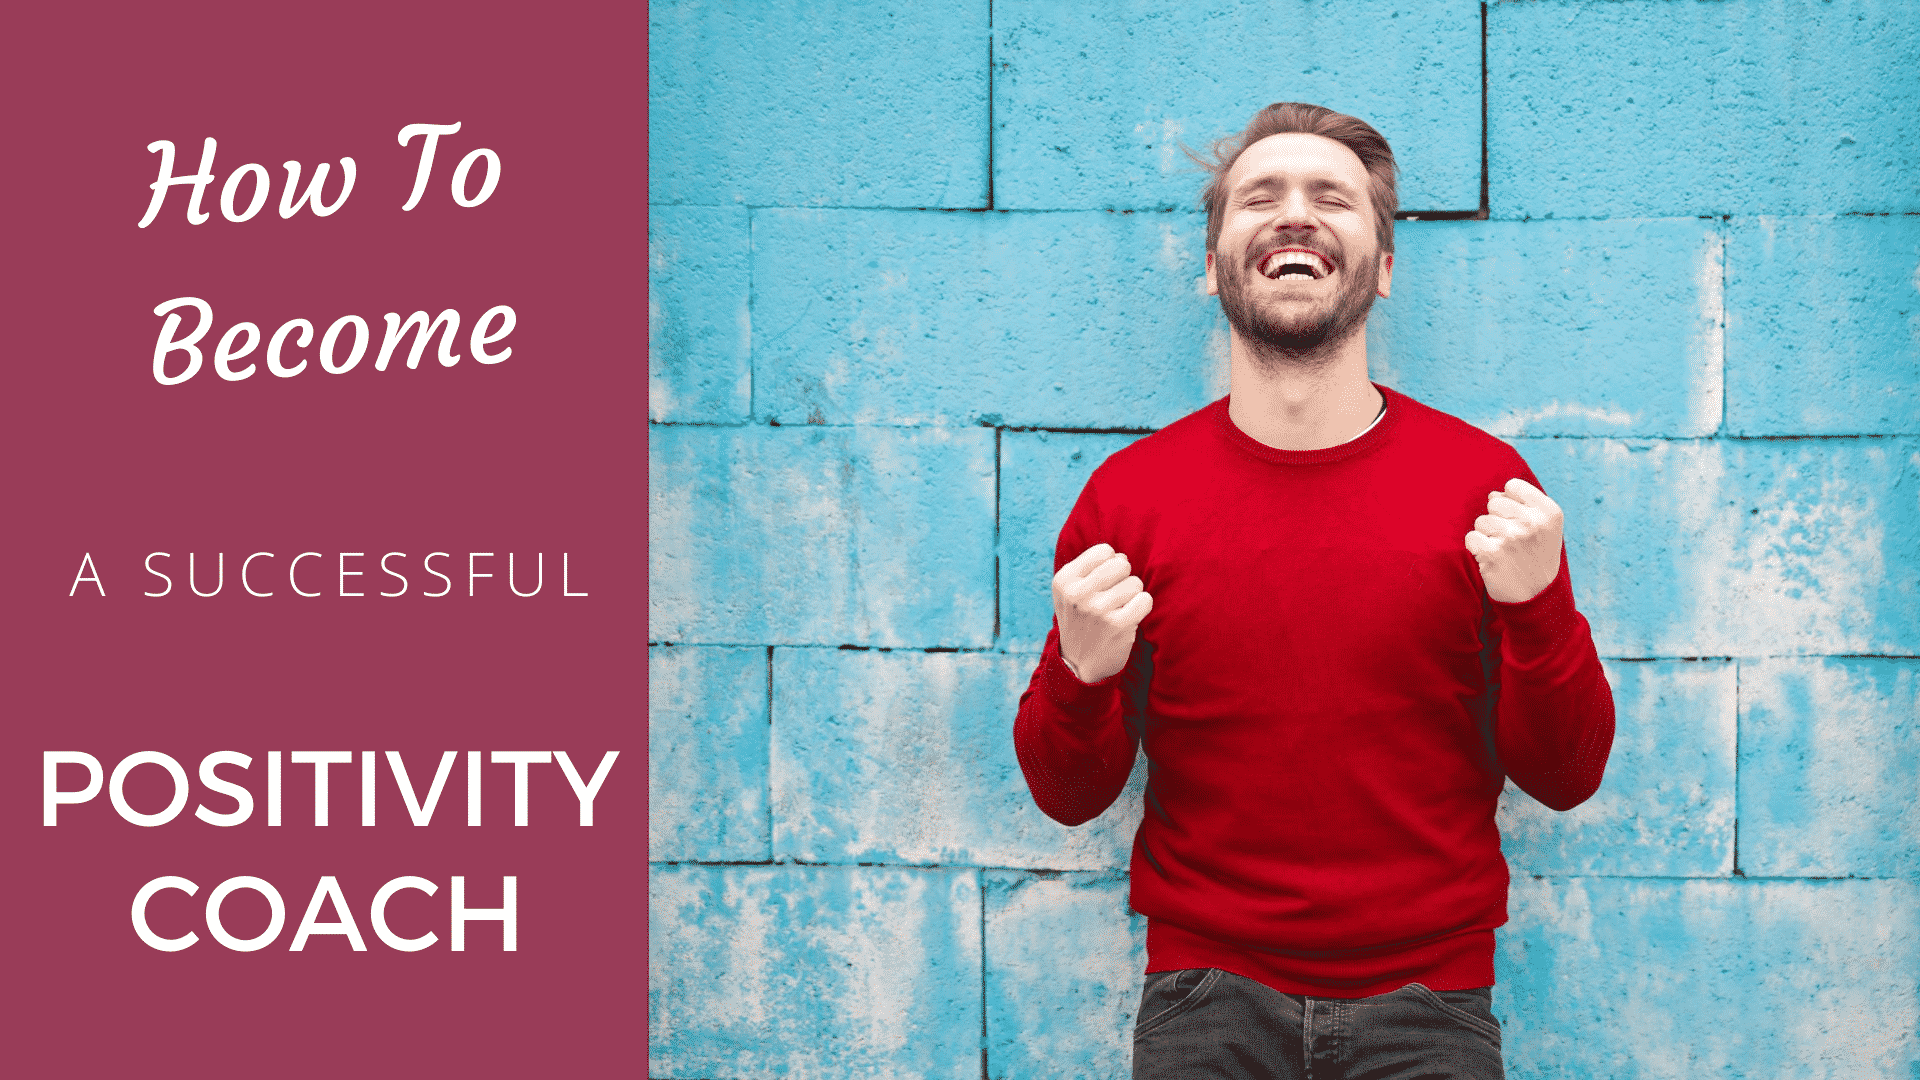 How to Become a Successful Positivity Coach in 2020? Positivity Coach